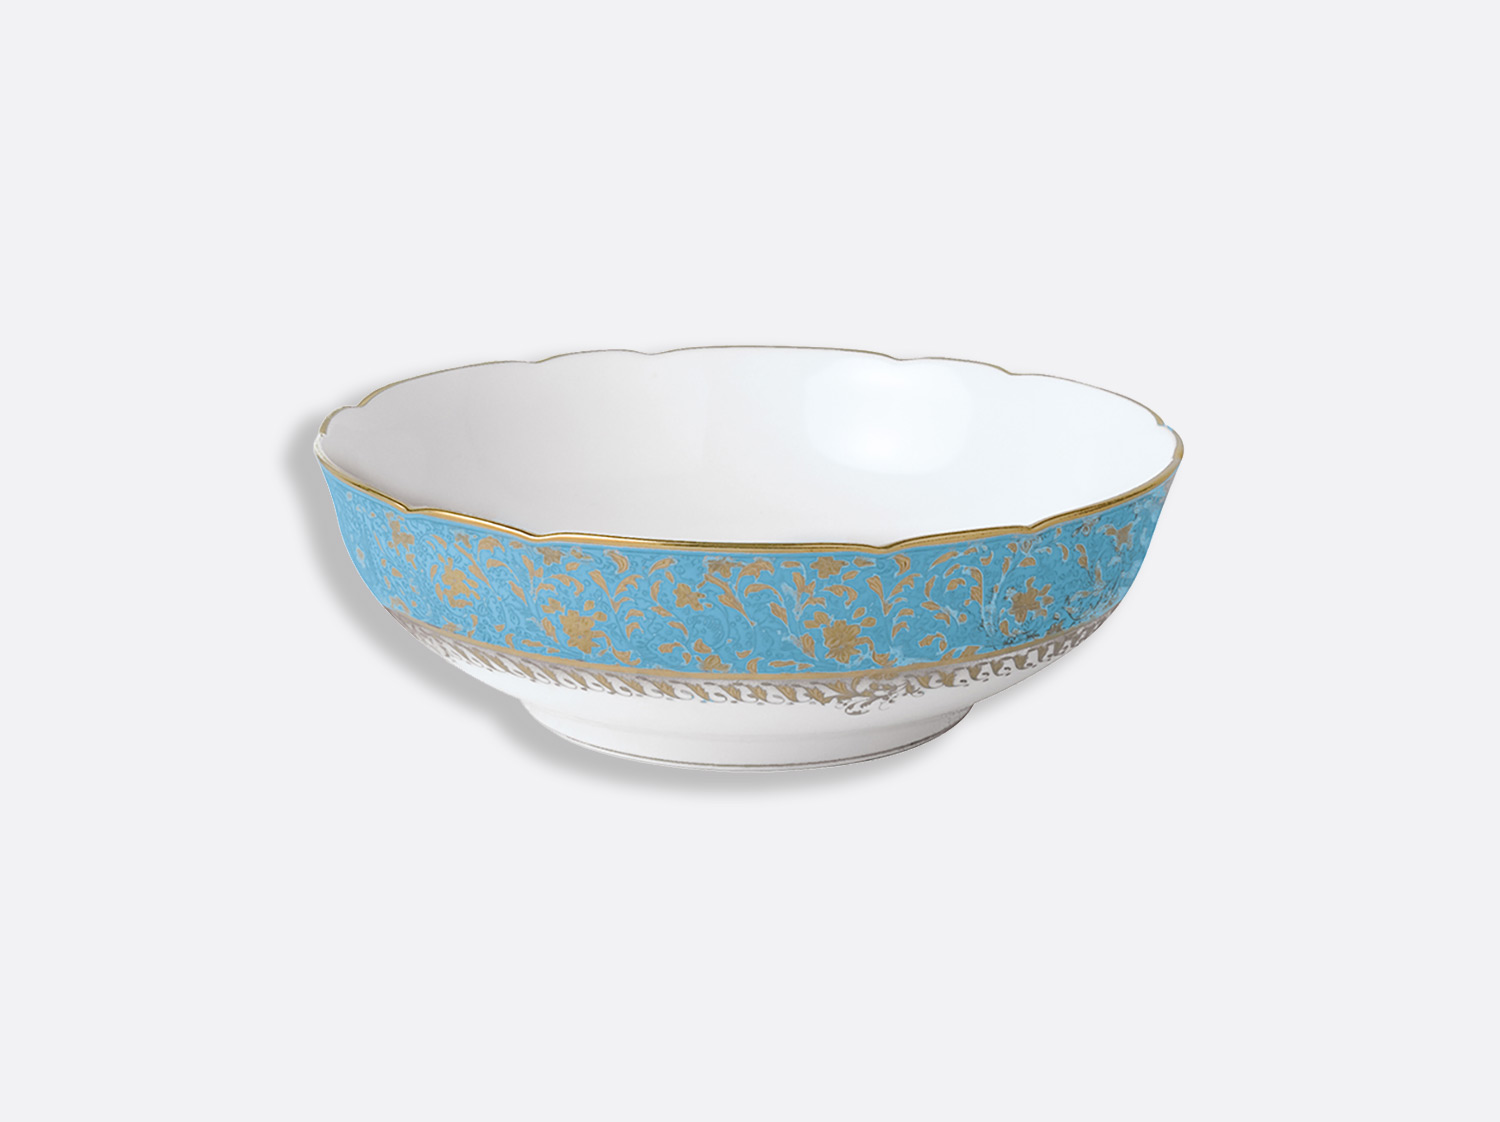 Saladier 25 cm 1,7 L en porcelaine de la collection Eden turquoise Bernardaud